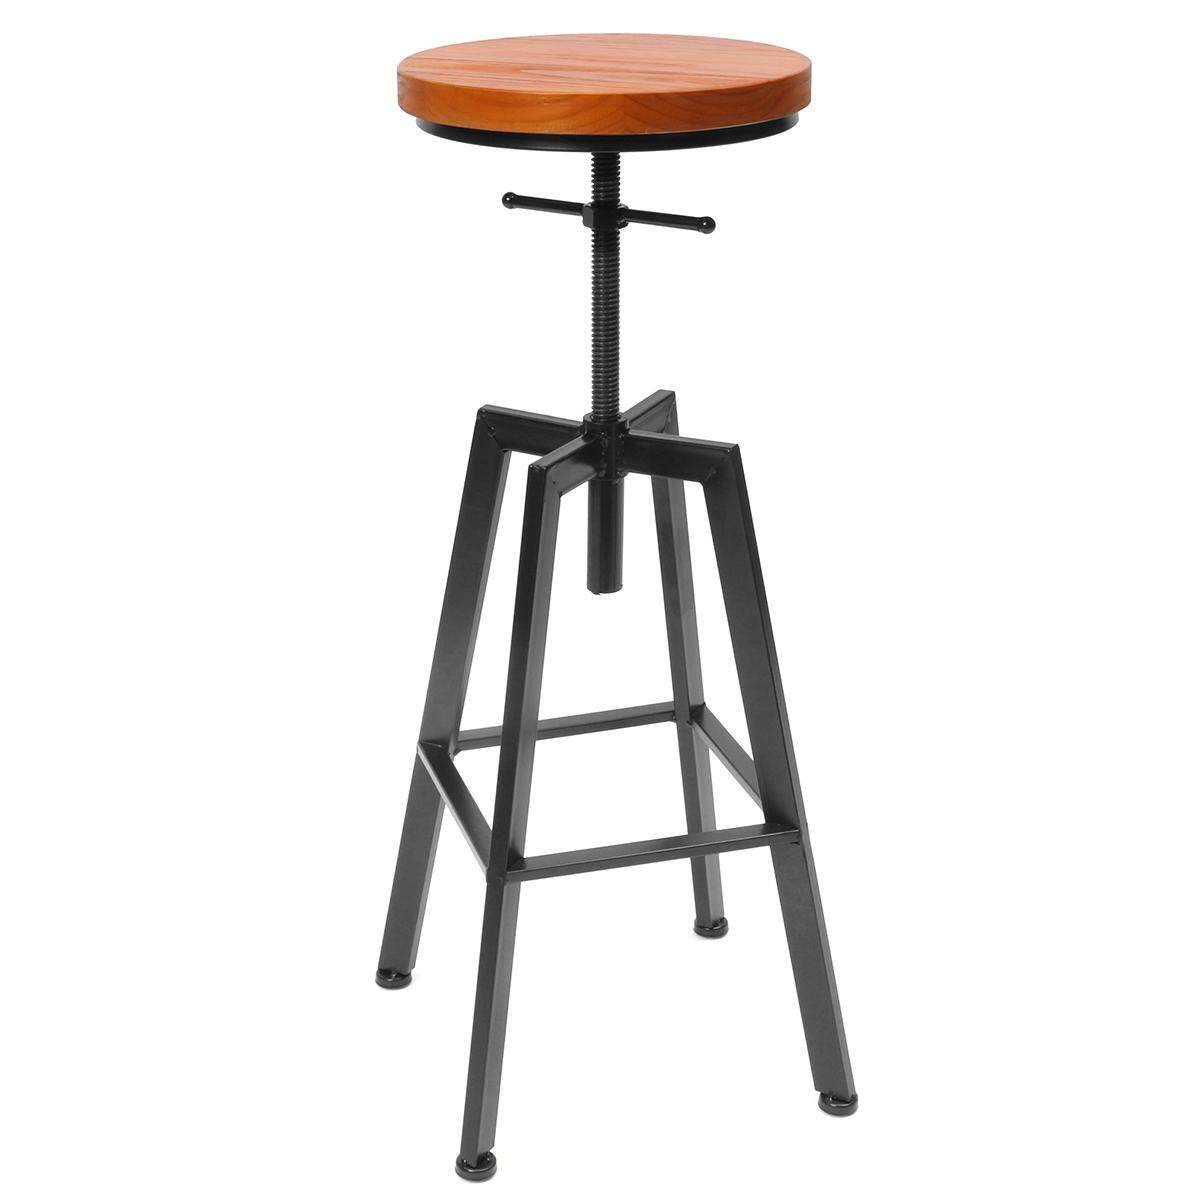 Vintage Retro Industrial Bar Stool Steel Home Kitchen Cafe Barstool Swivel Chair - intl